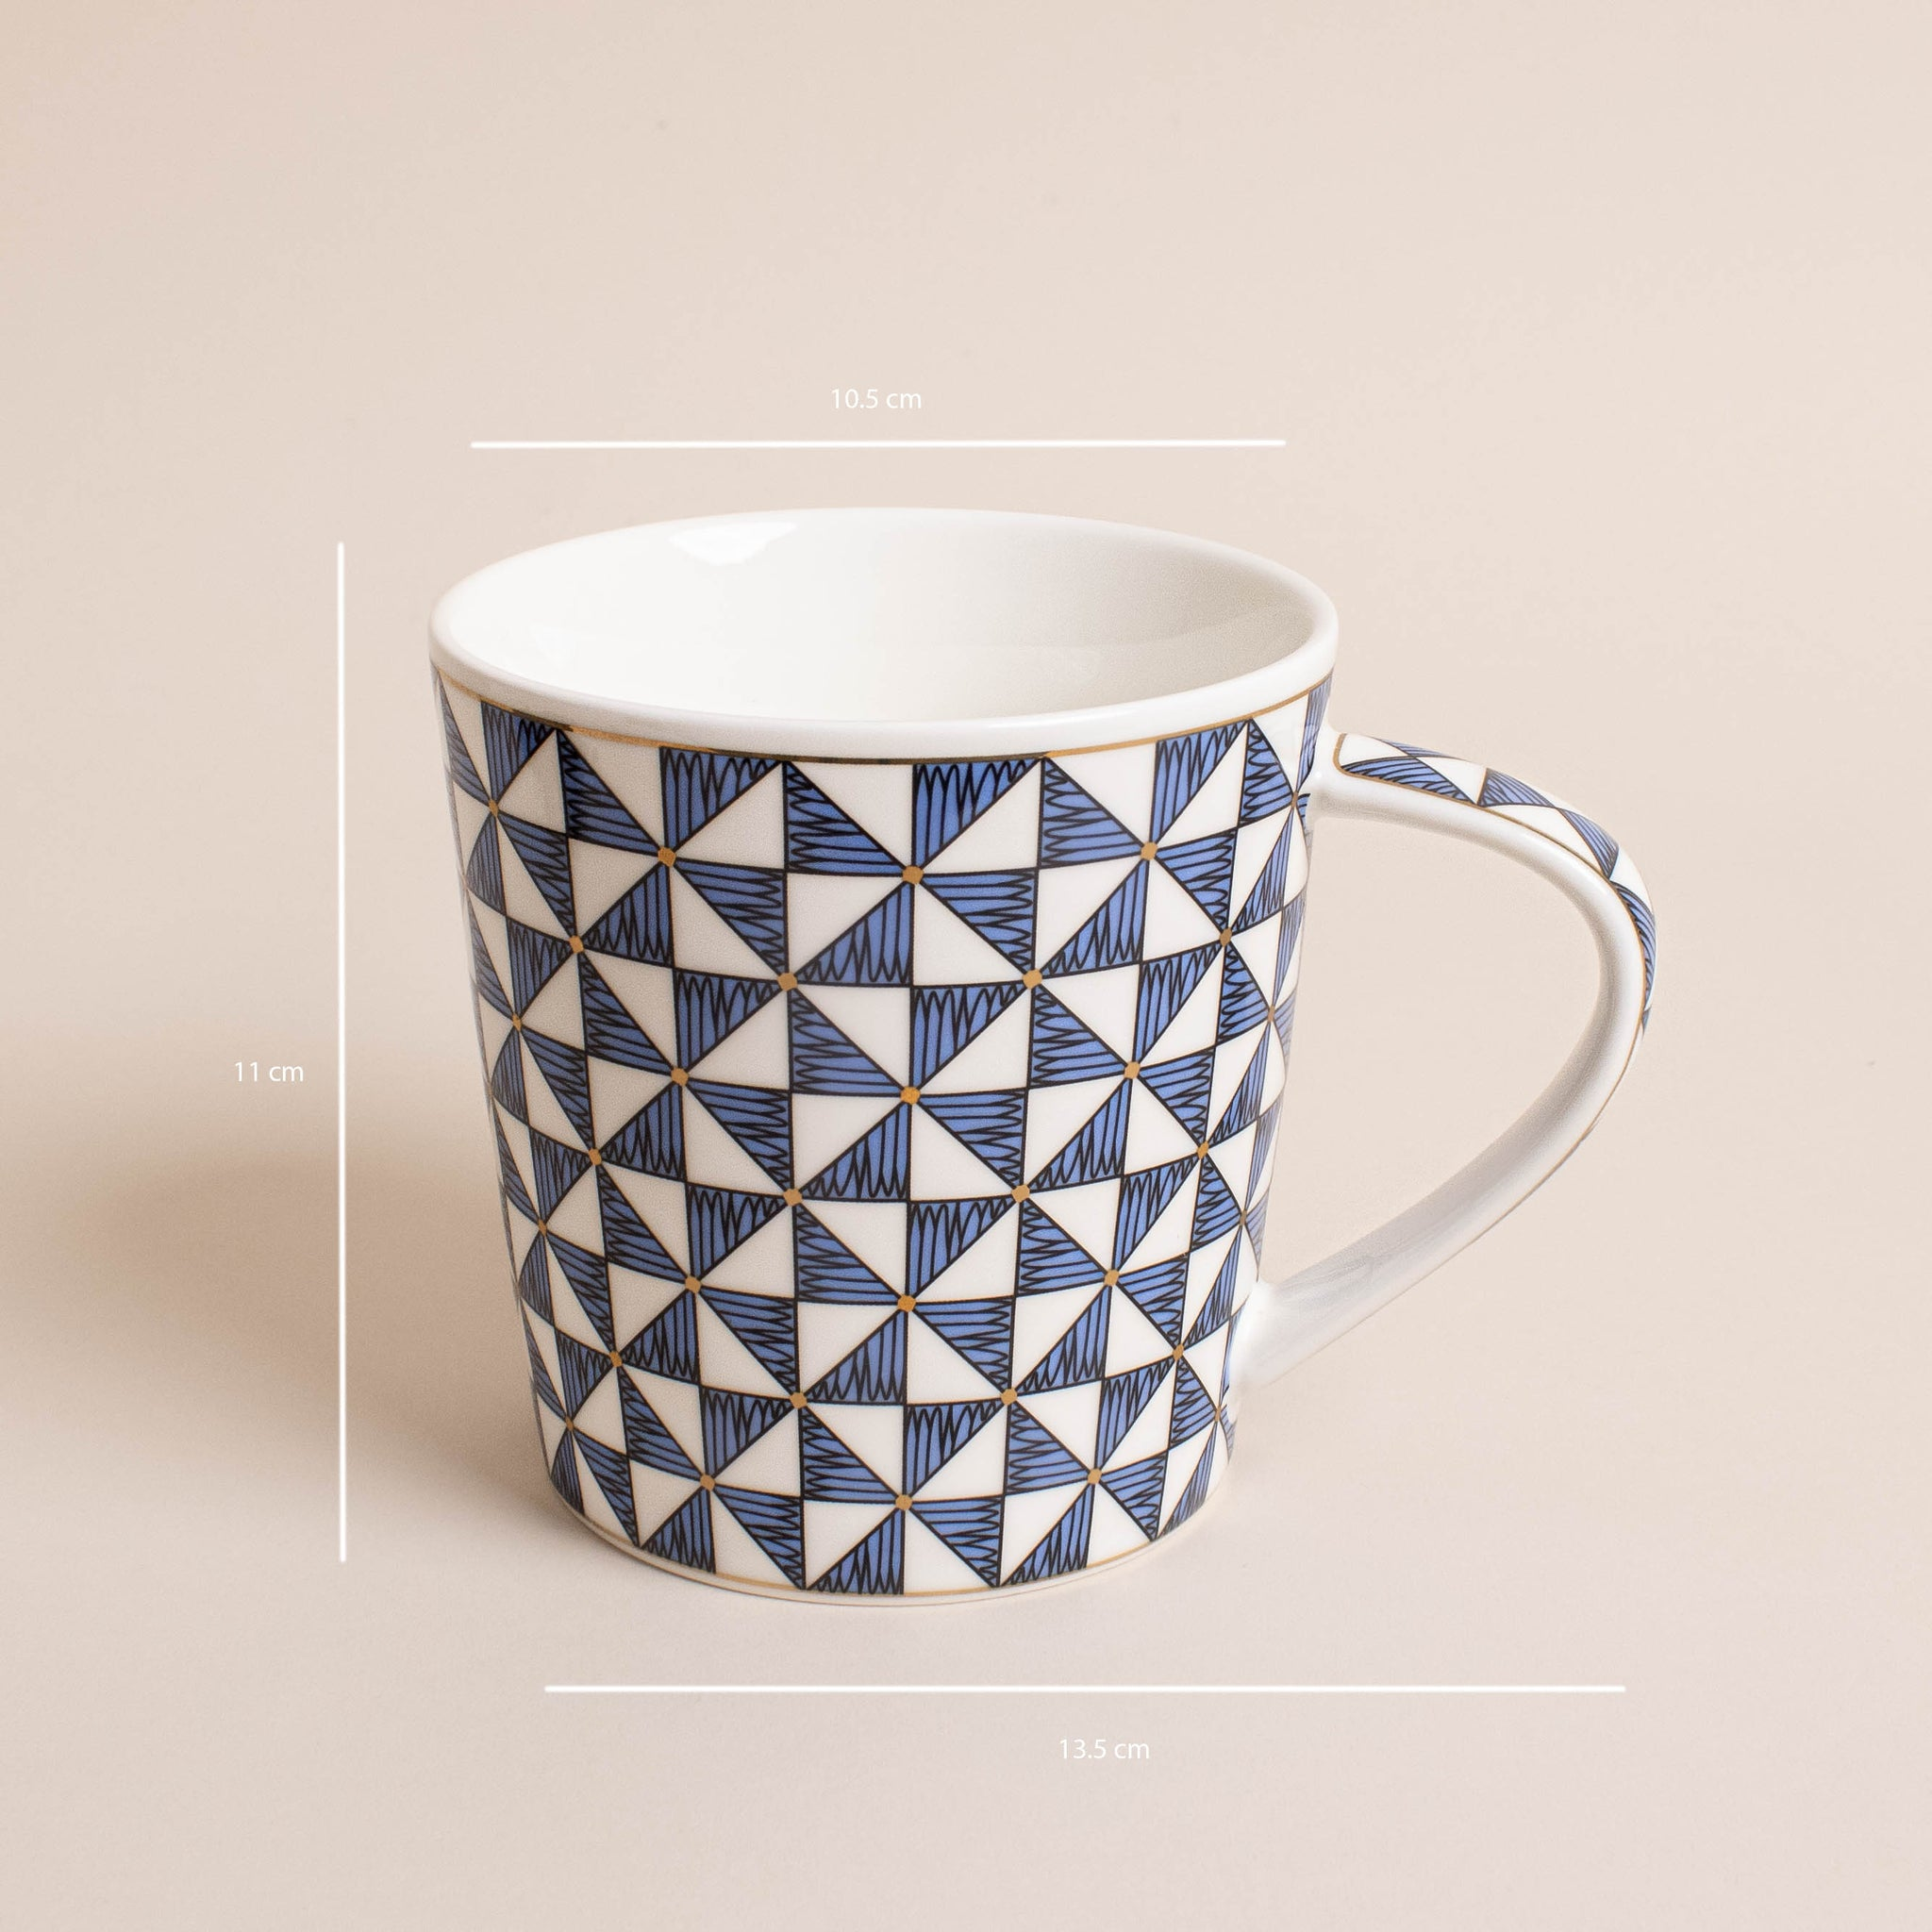 luna large coffee mug